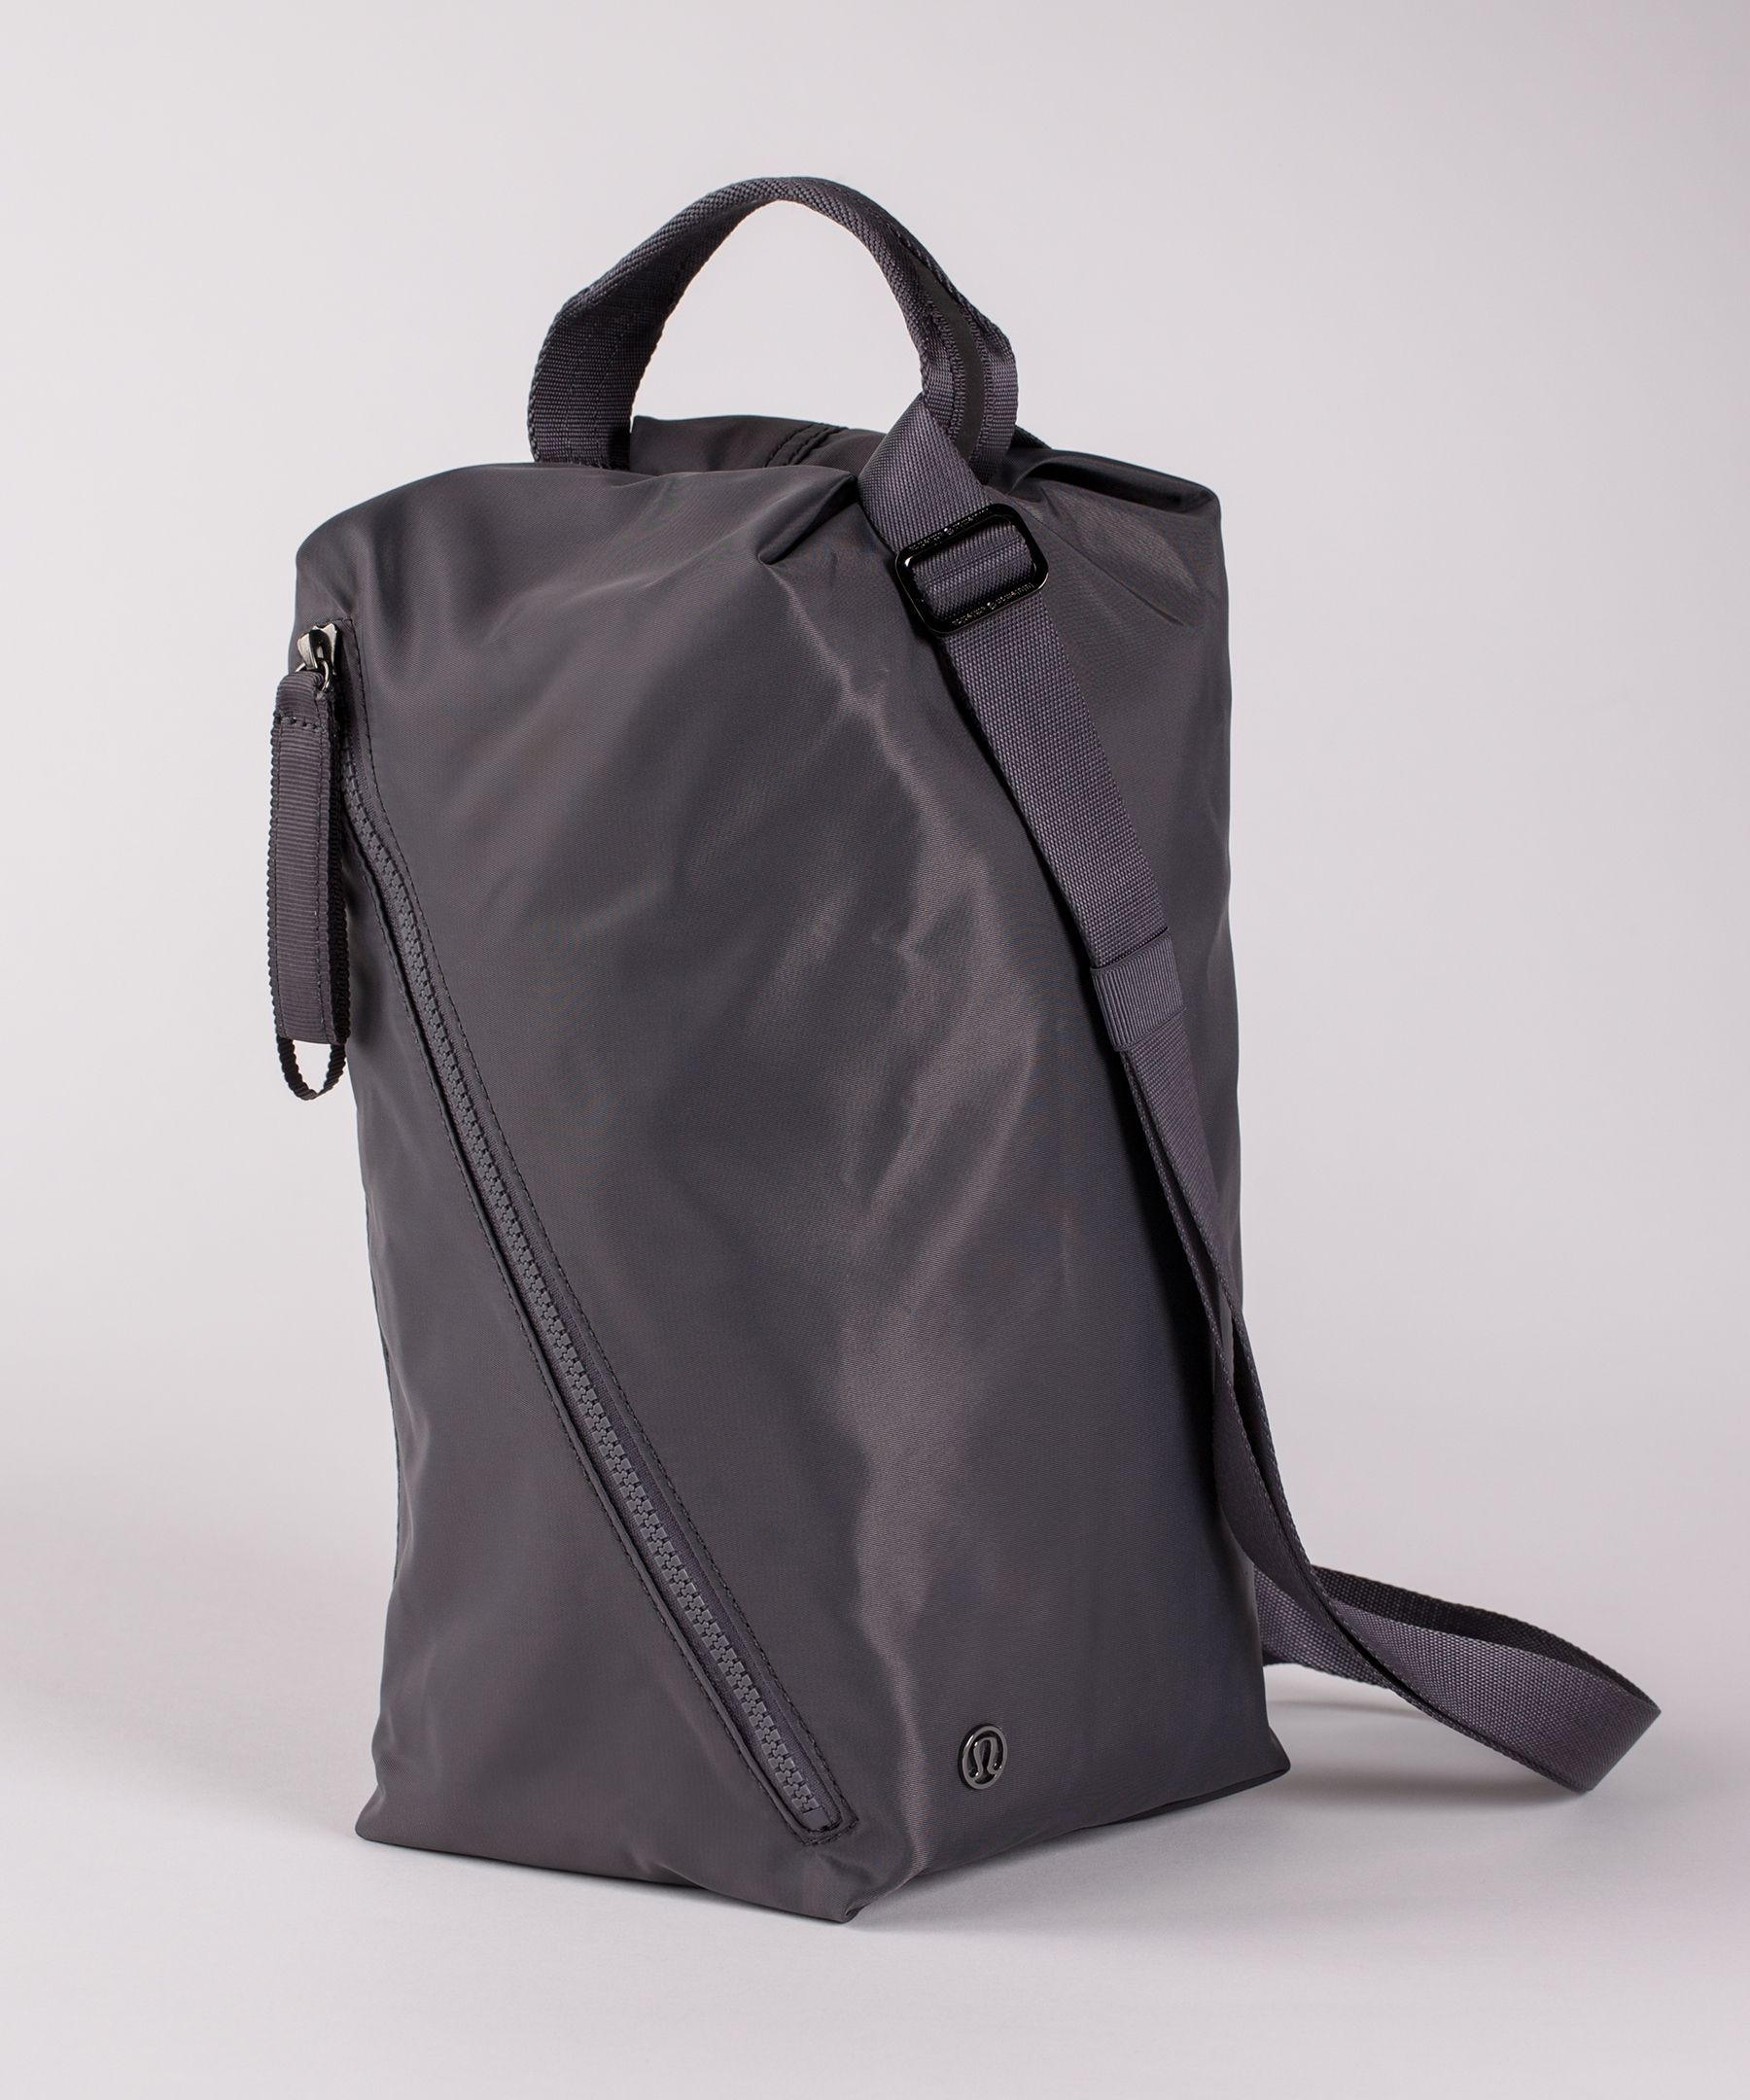 Track Bag Bags Sling Backpack